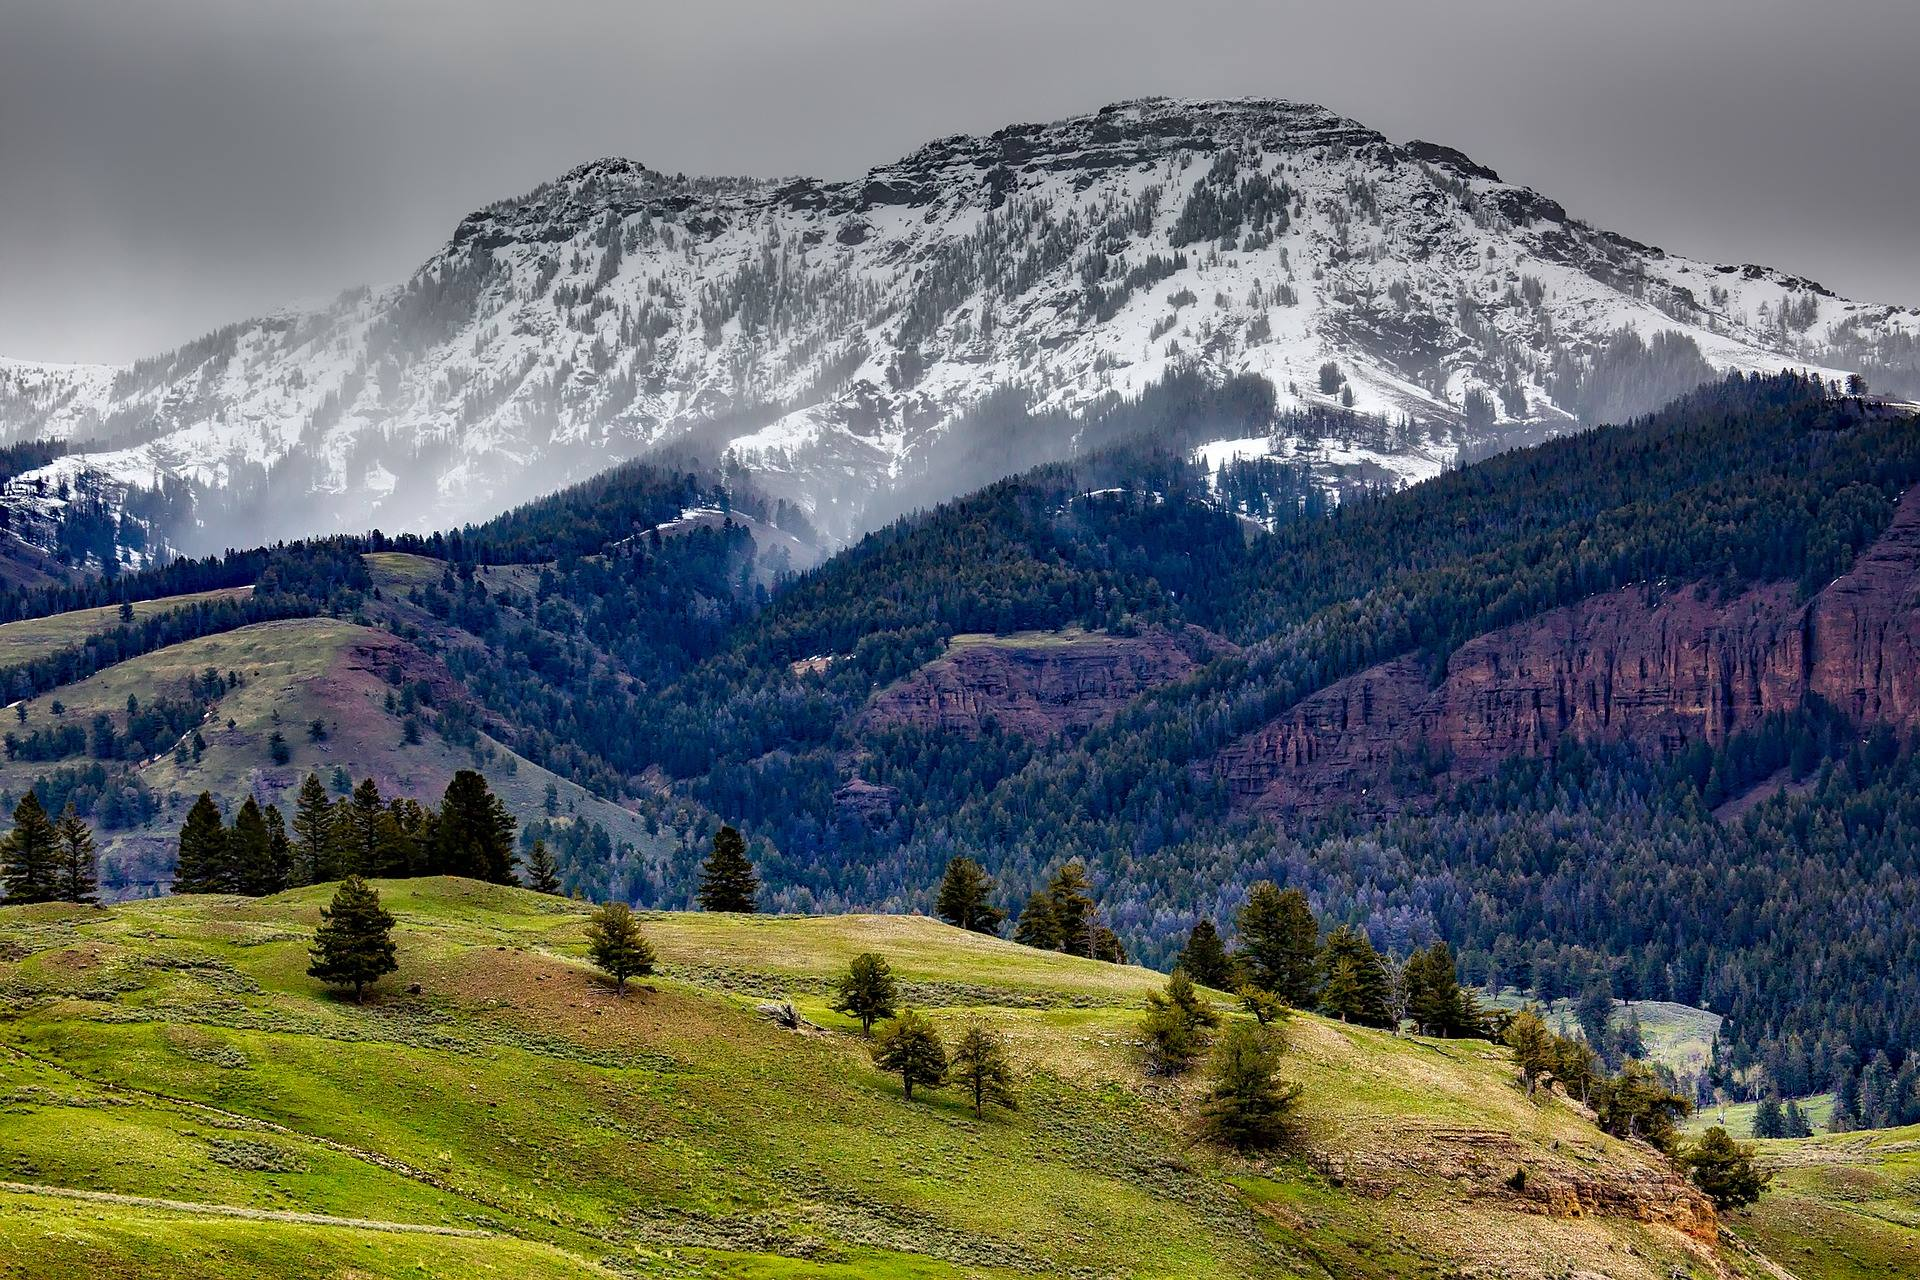 yellowstone national park landscape mountains forest